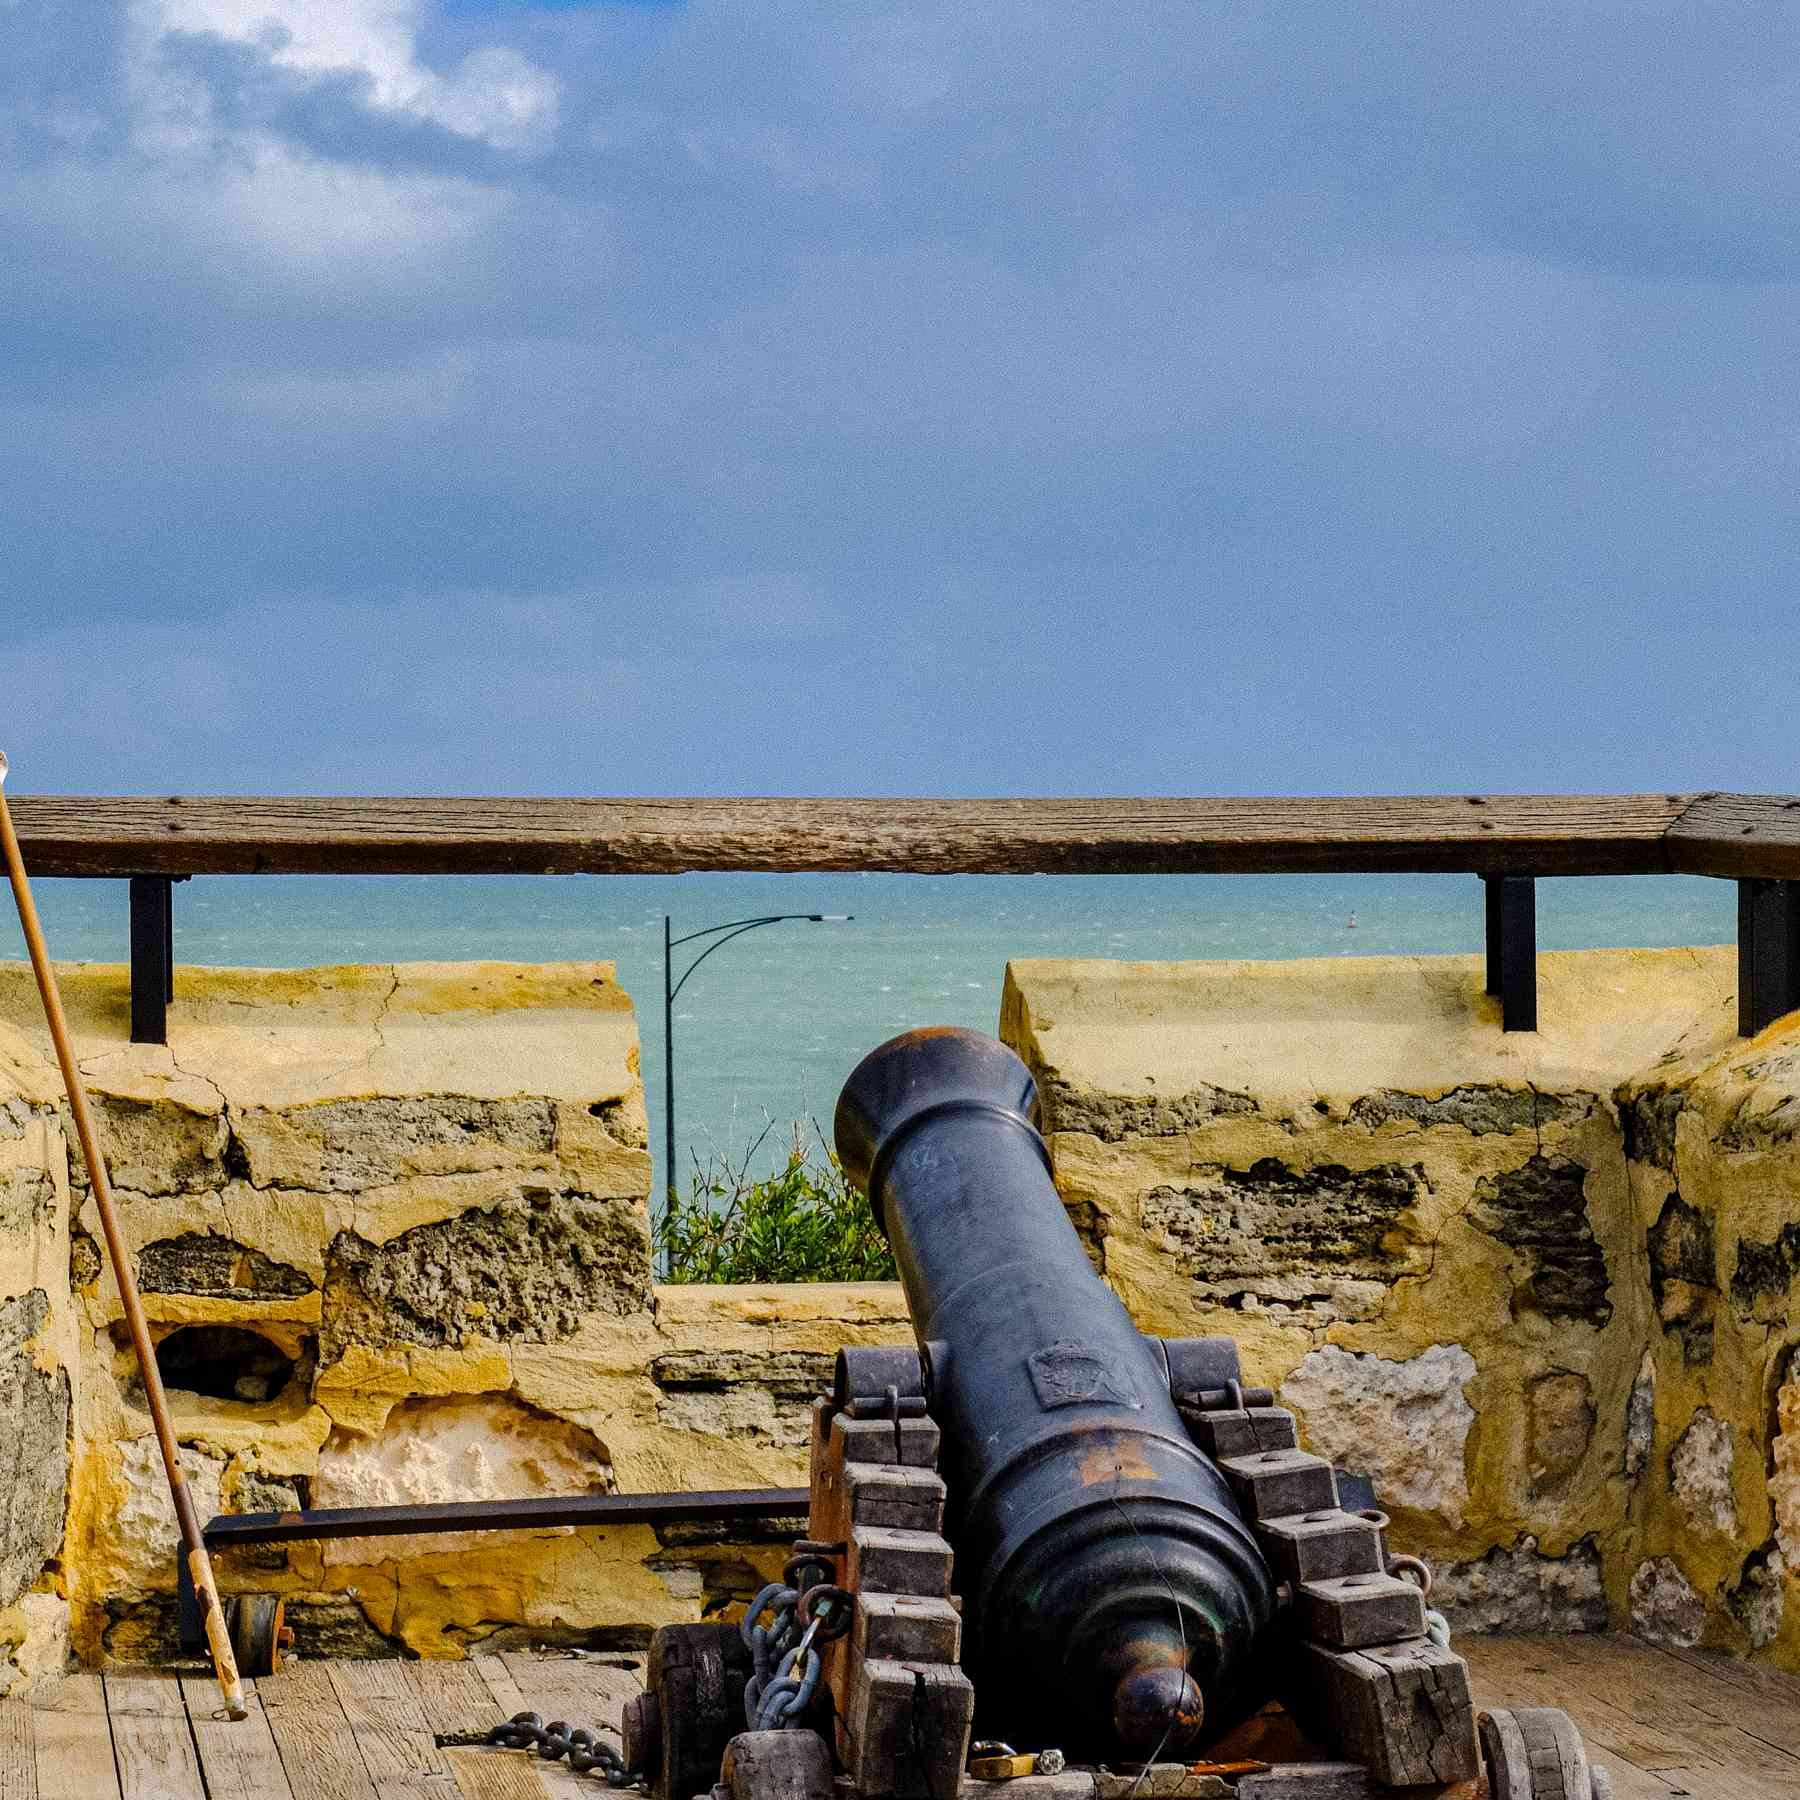 Cannon at the Freemantle Prison